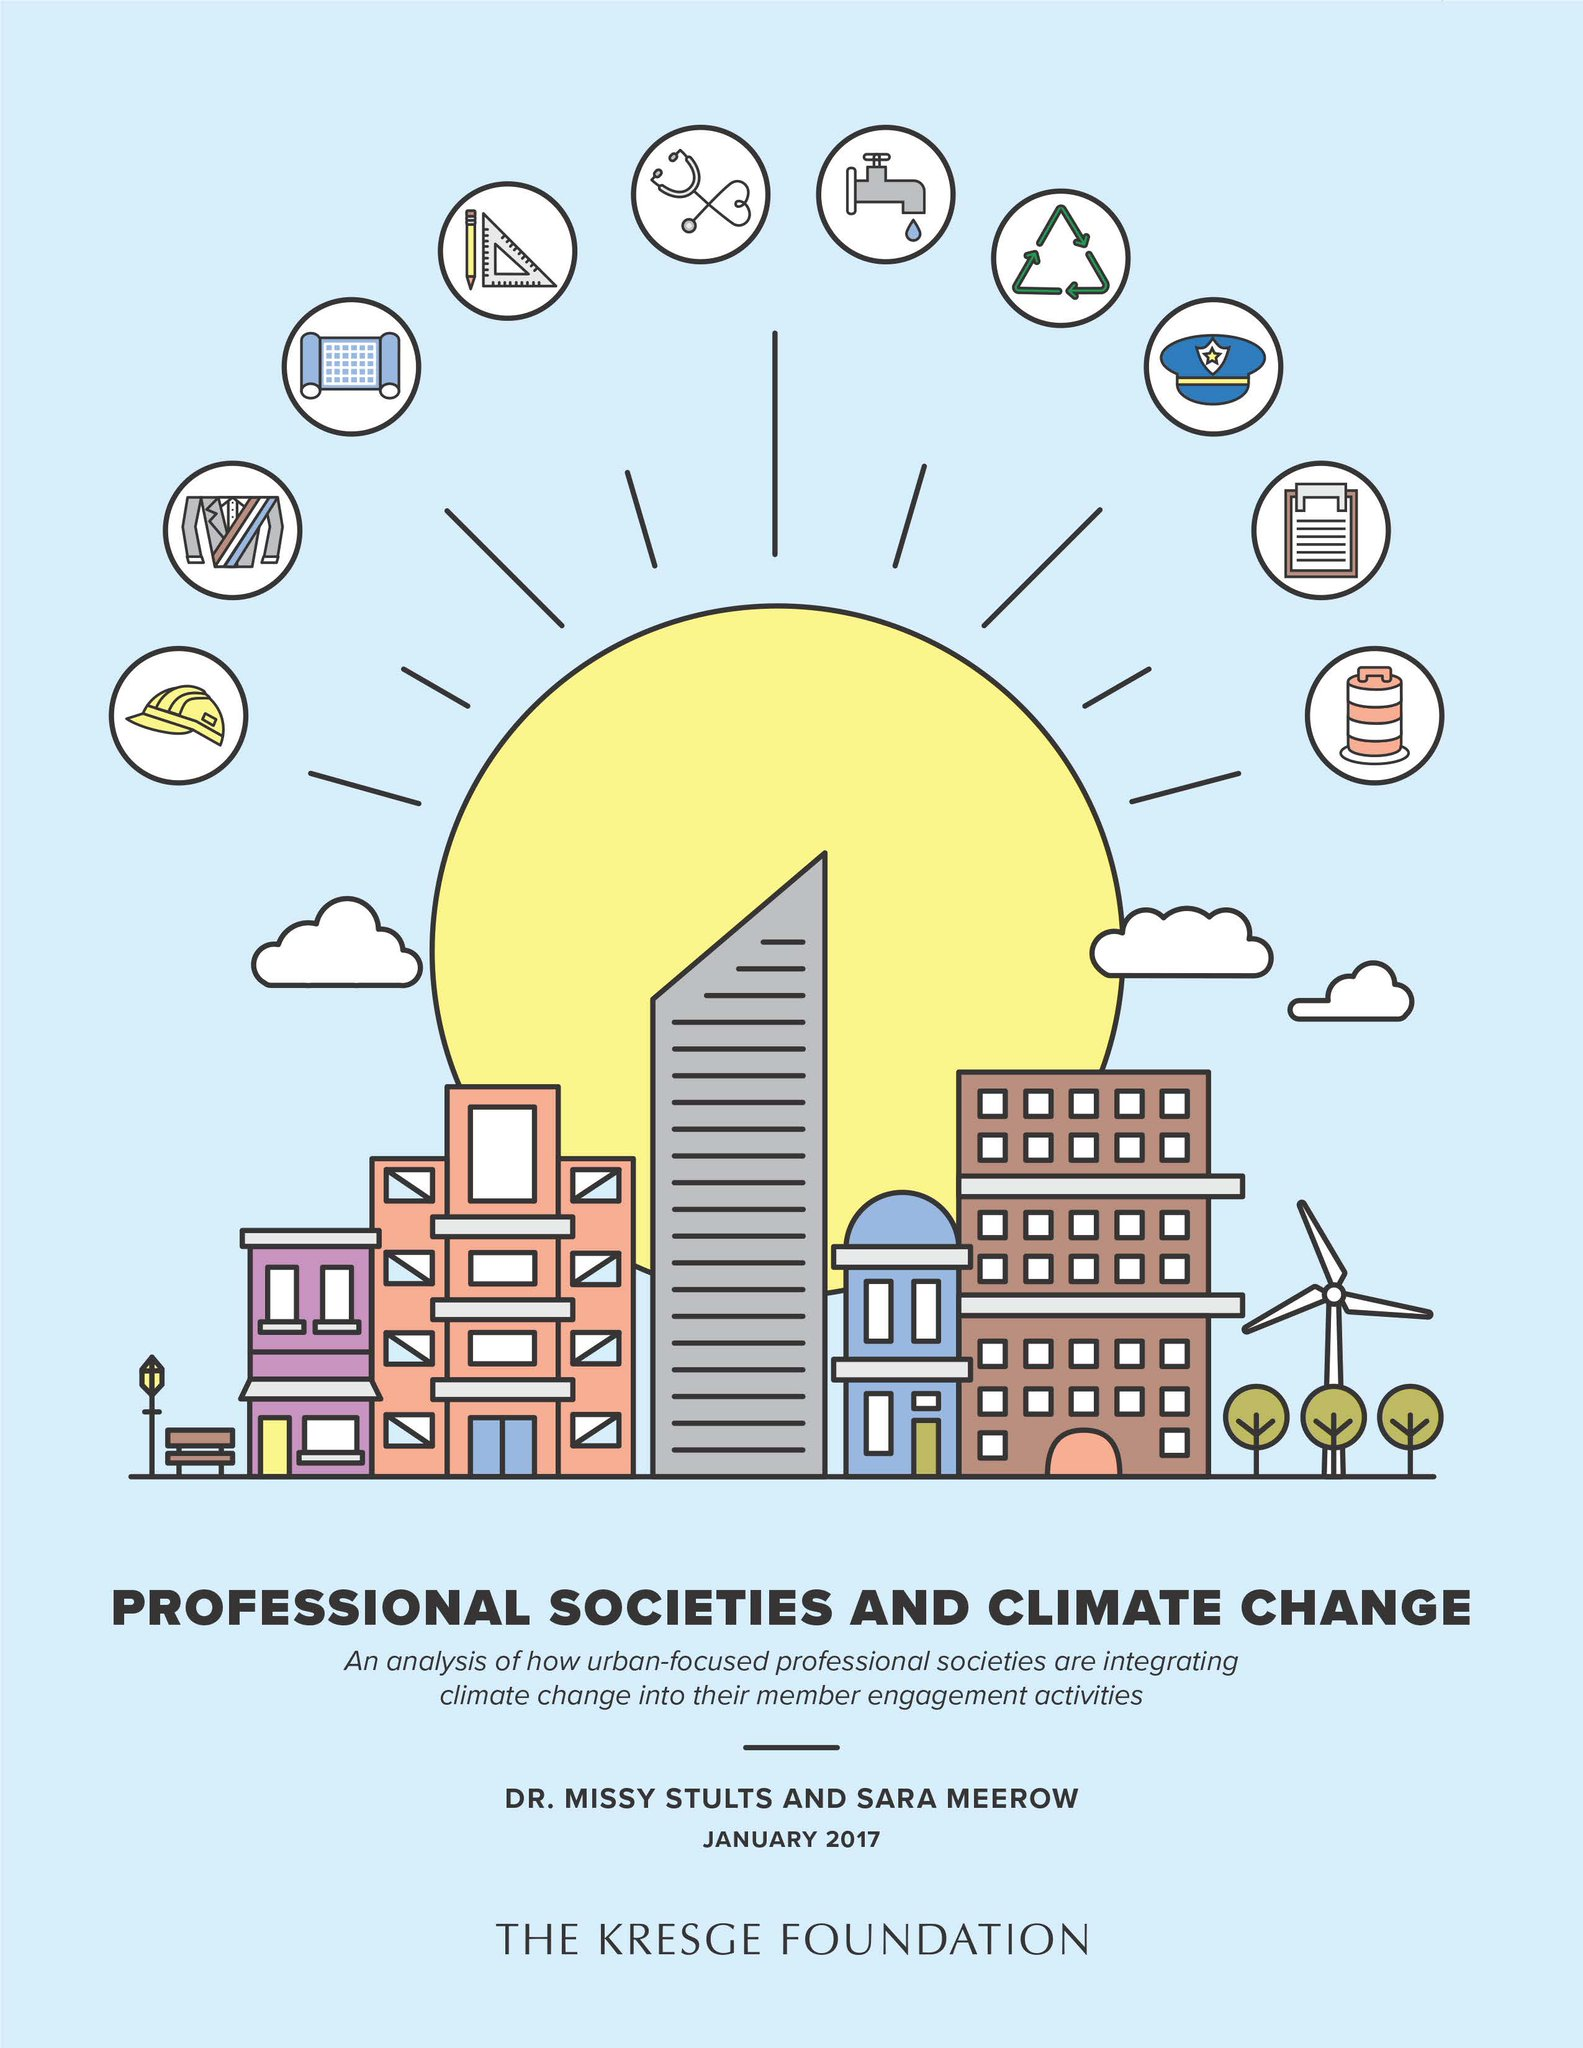 APHA is one of 9 U.S. professional societies taking comprehensive approaches to climate change, says @kresgefdn: https://t.co/9KkW7MUFdp https://t.co/z7Iihpia2i